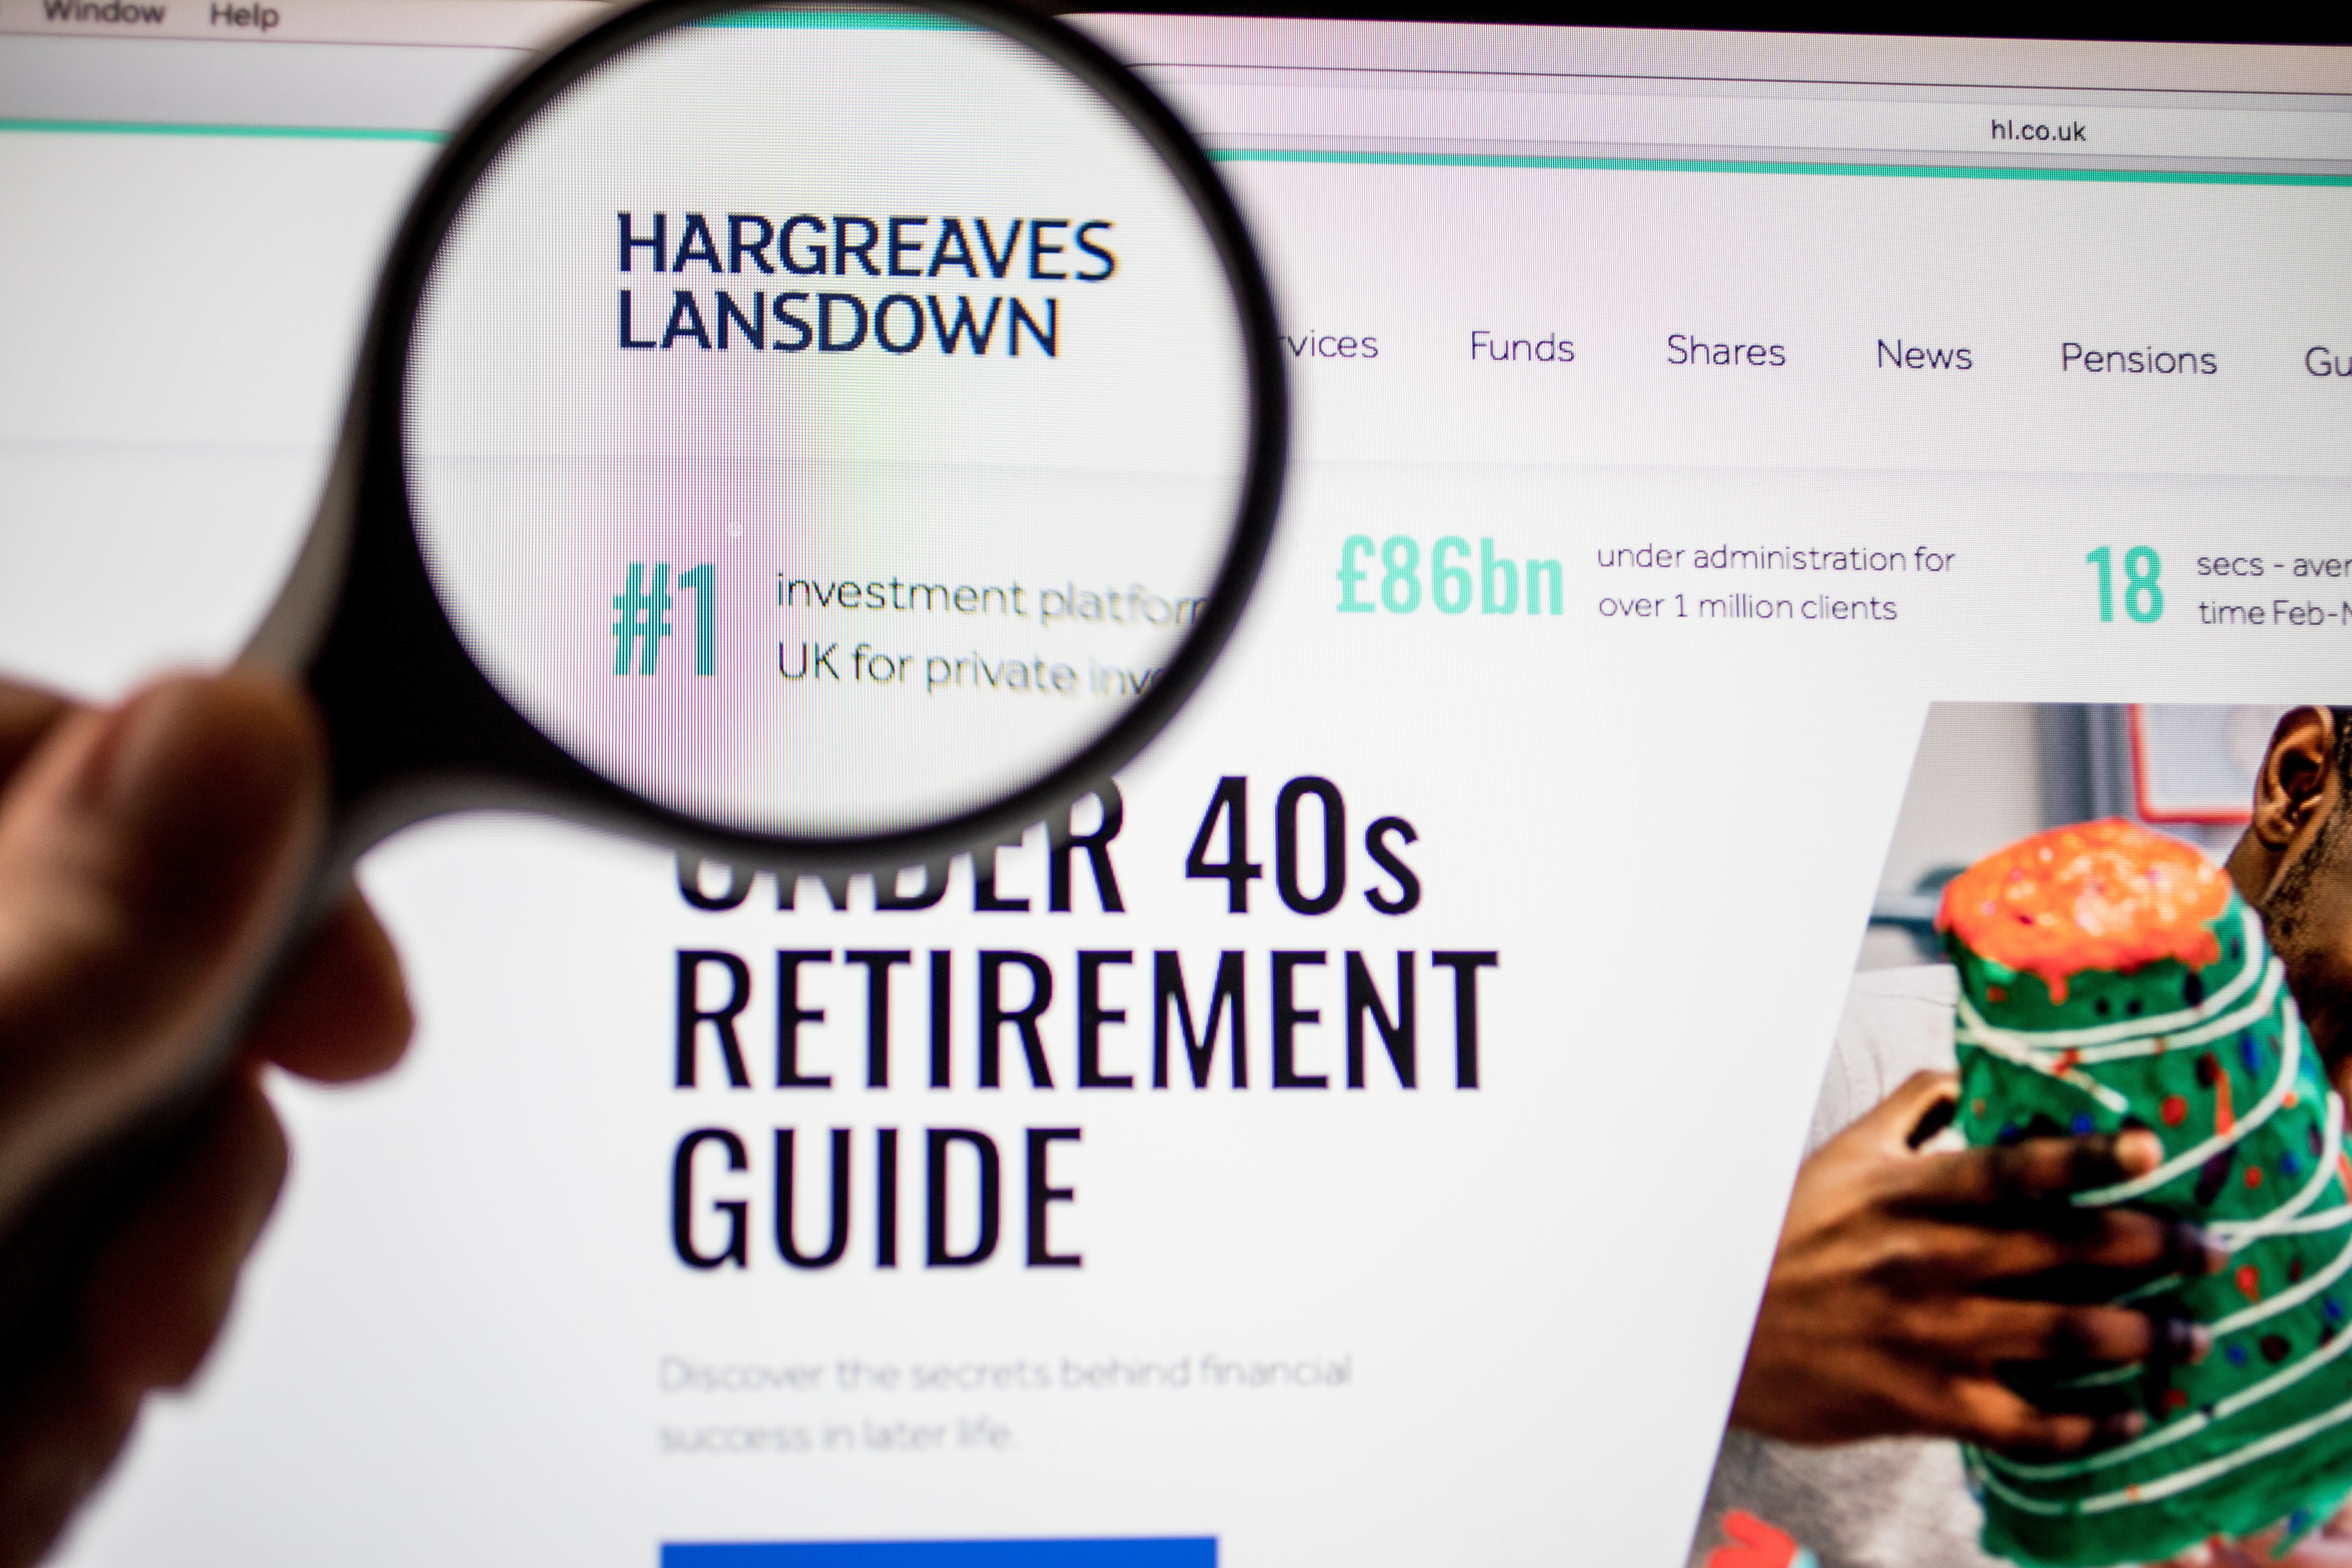 Woodford exposure haunts Hargreaves Lansdown funds